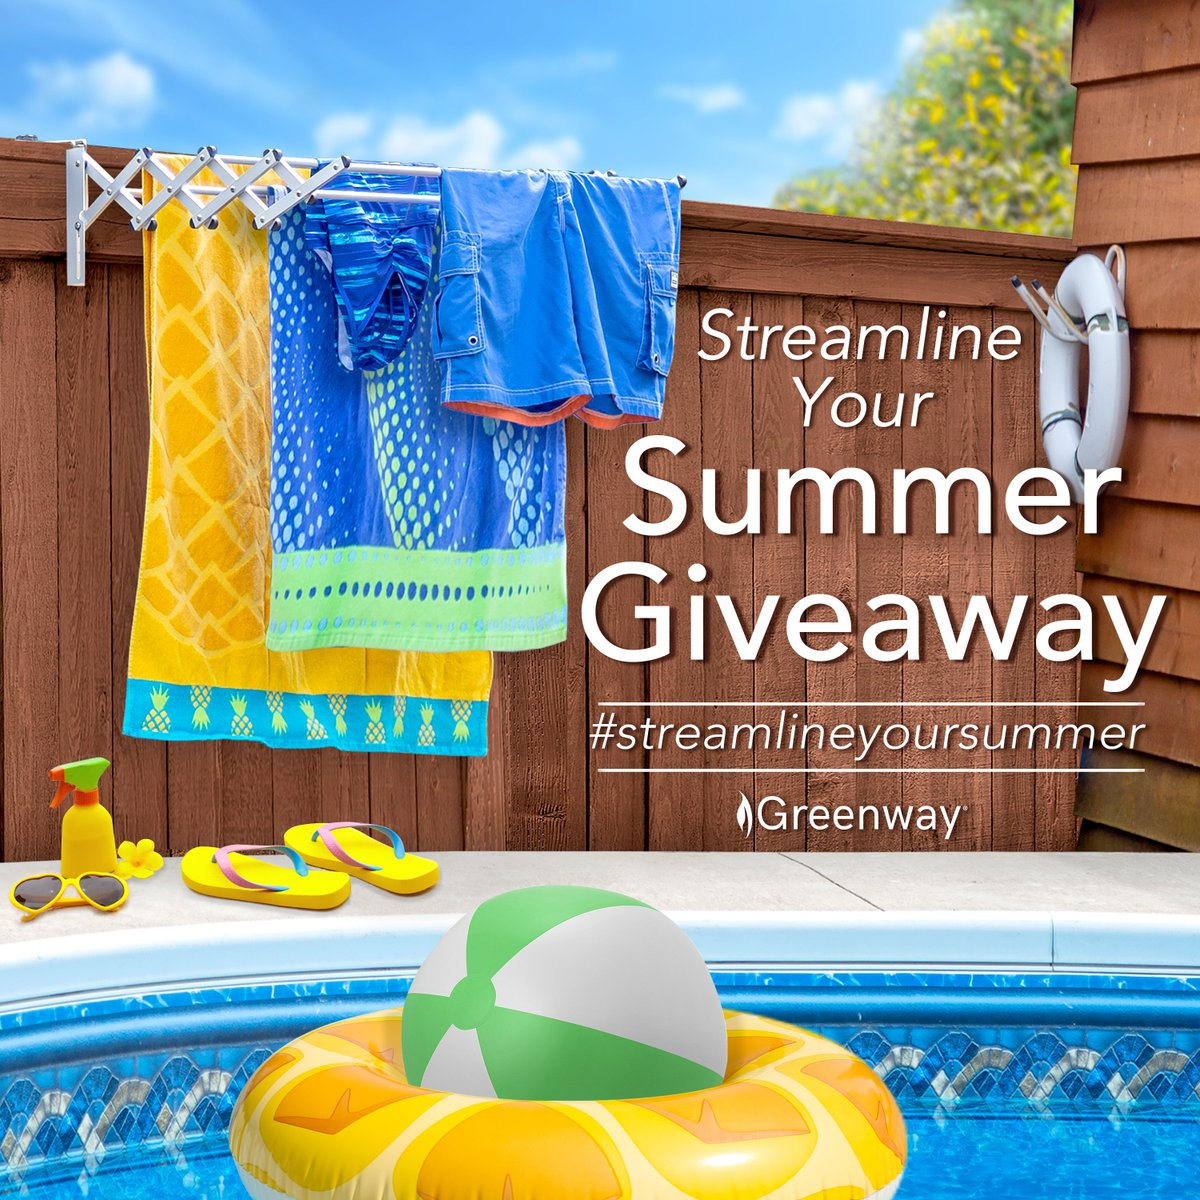 The window is closing on your chance to #streamlineyoursummer with the GCL31AL Greenway Indoor/Outdoor Foldable Drying Rack, with Optional Wall-Mount. Be sure to enter here: https://t.co/zTomZtpWQZ https://t.co/uGYd218Yxd